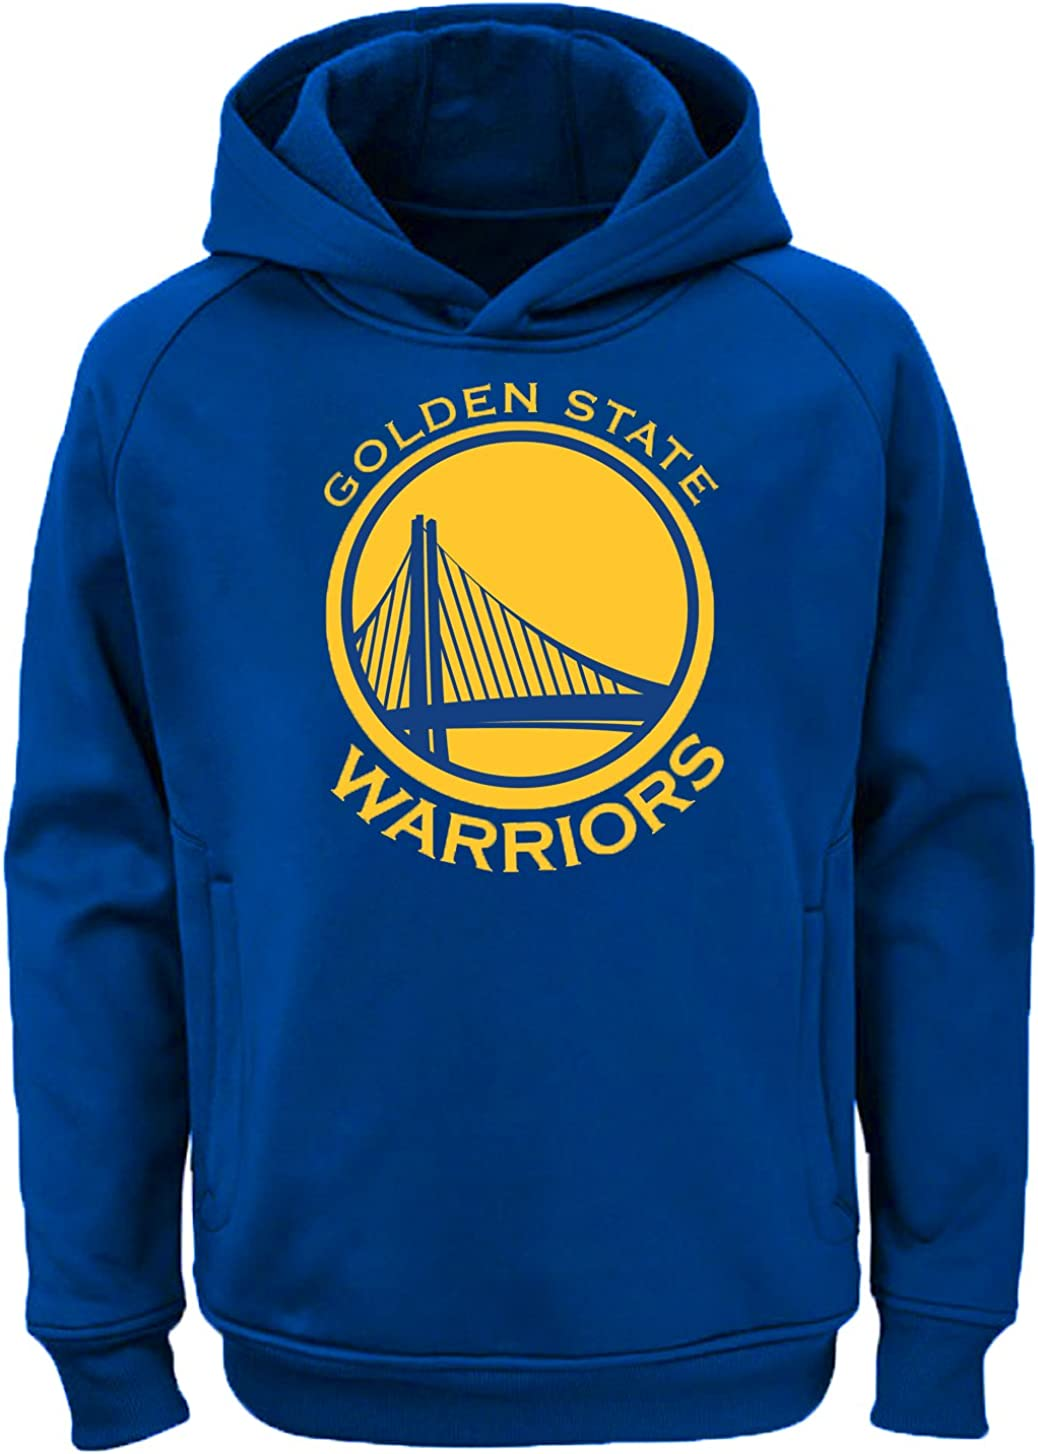 Outerstuff NBA Kids 4-7 Team Color Polyester Performance Primary Logo Pullover Sweatshirt Hoodie